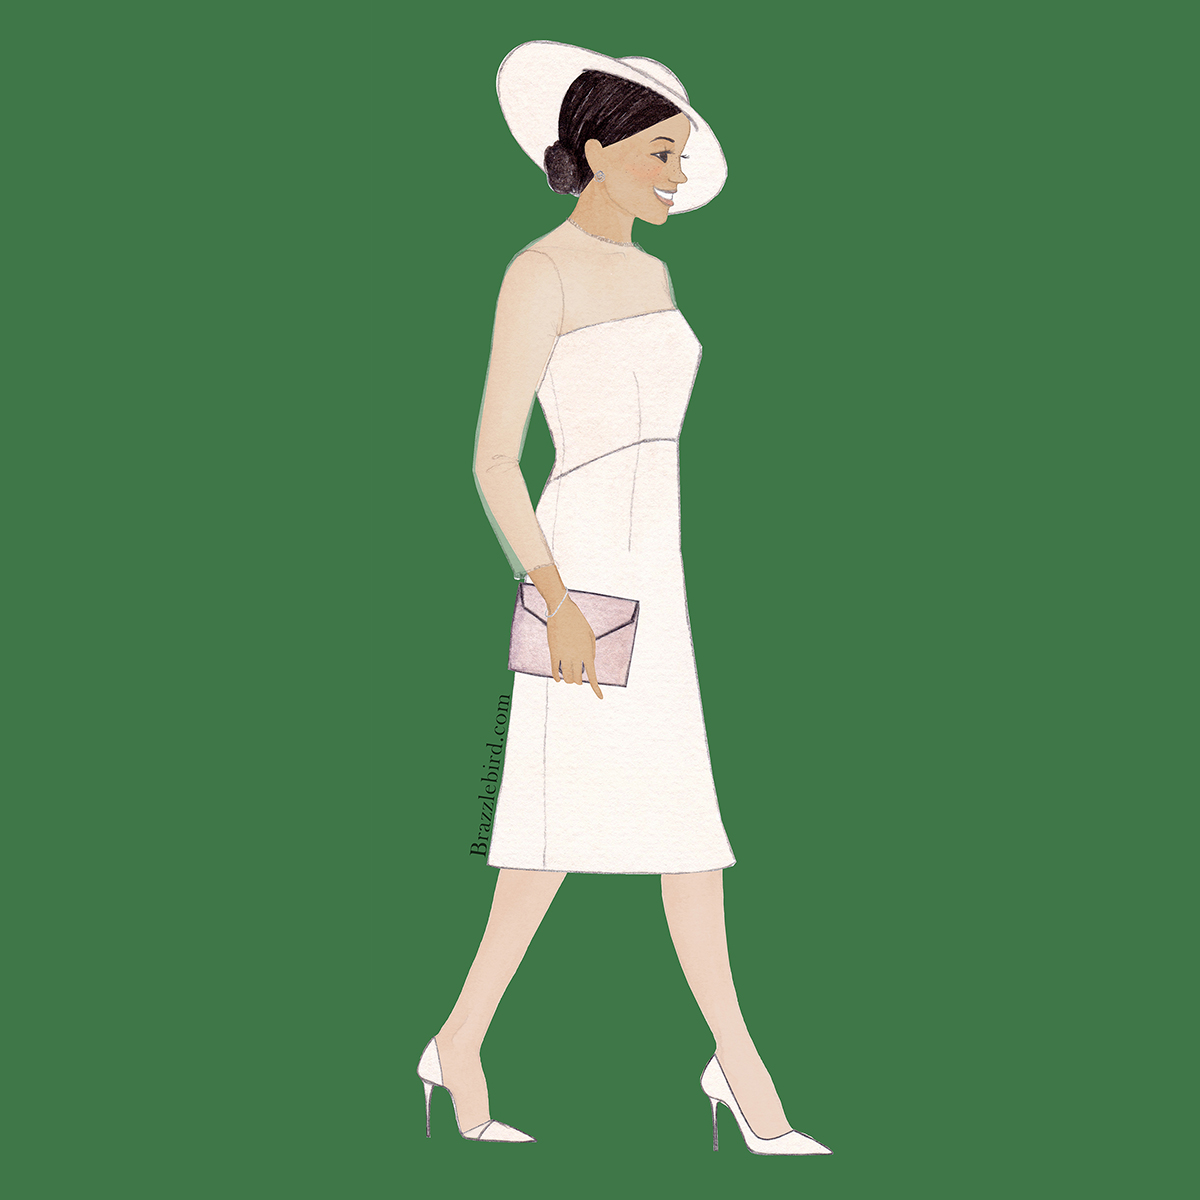 Brazzlebird Meghan Markle GOAT Dress Garden Party Fashion Illustration